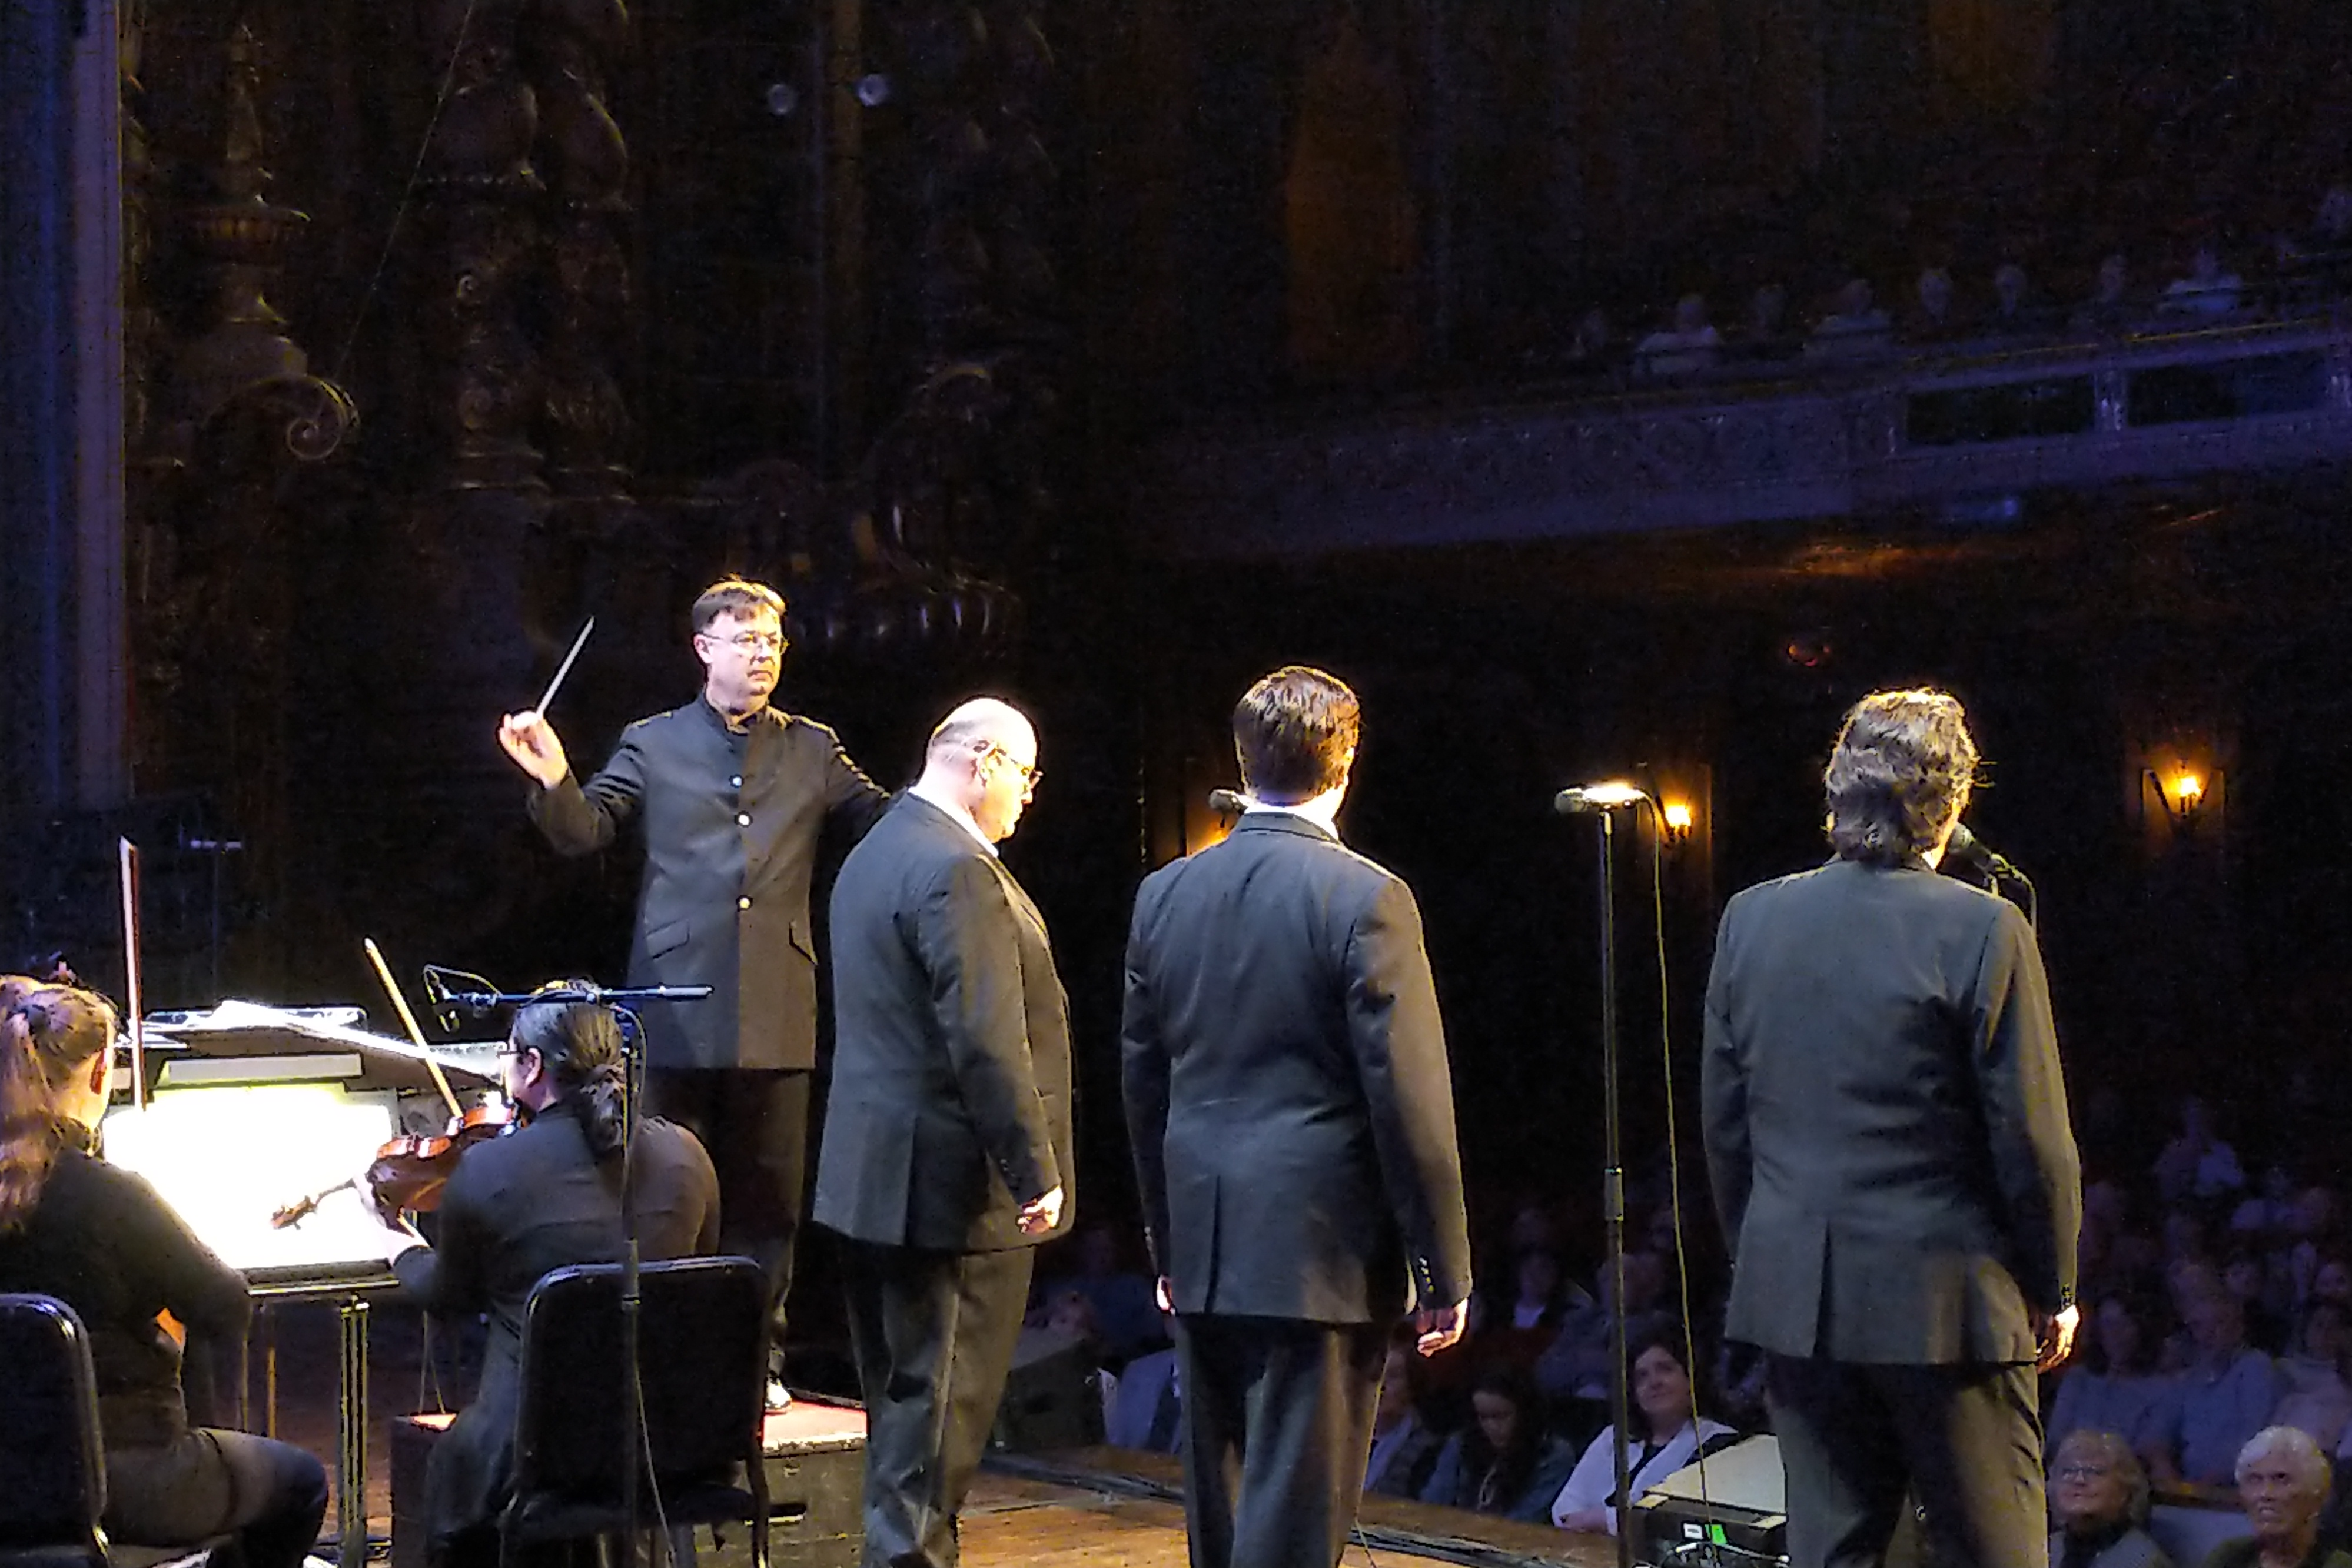 David Wroe and the 3 Irish Tenors